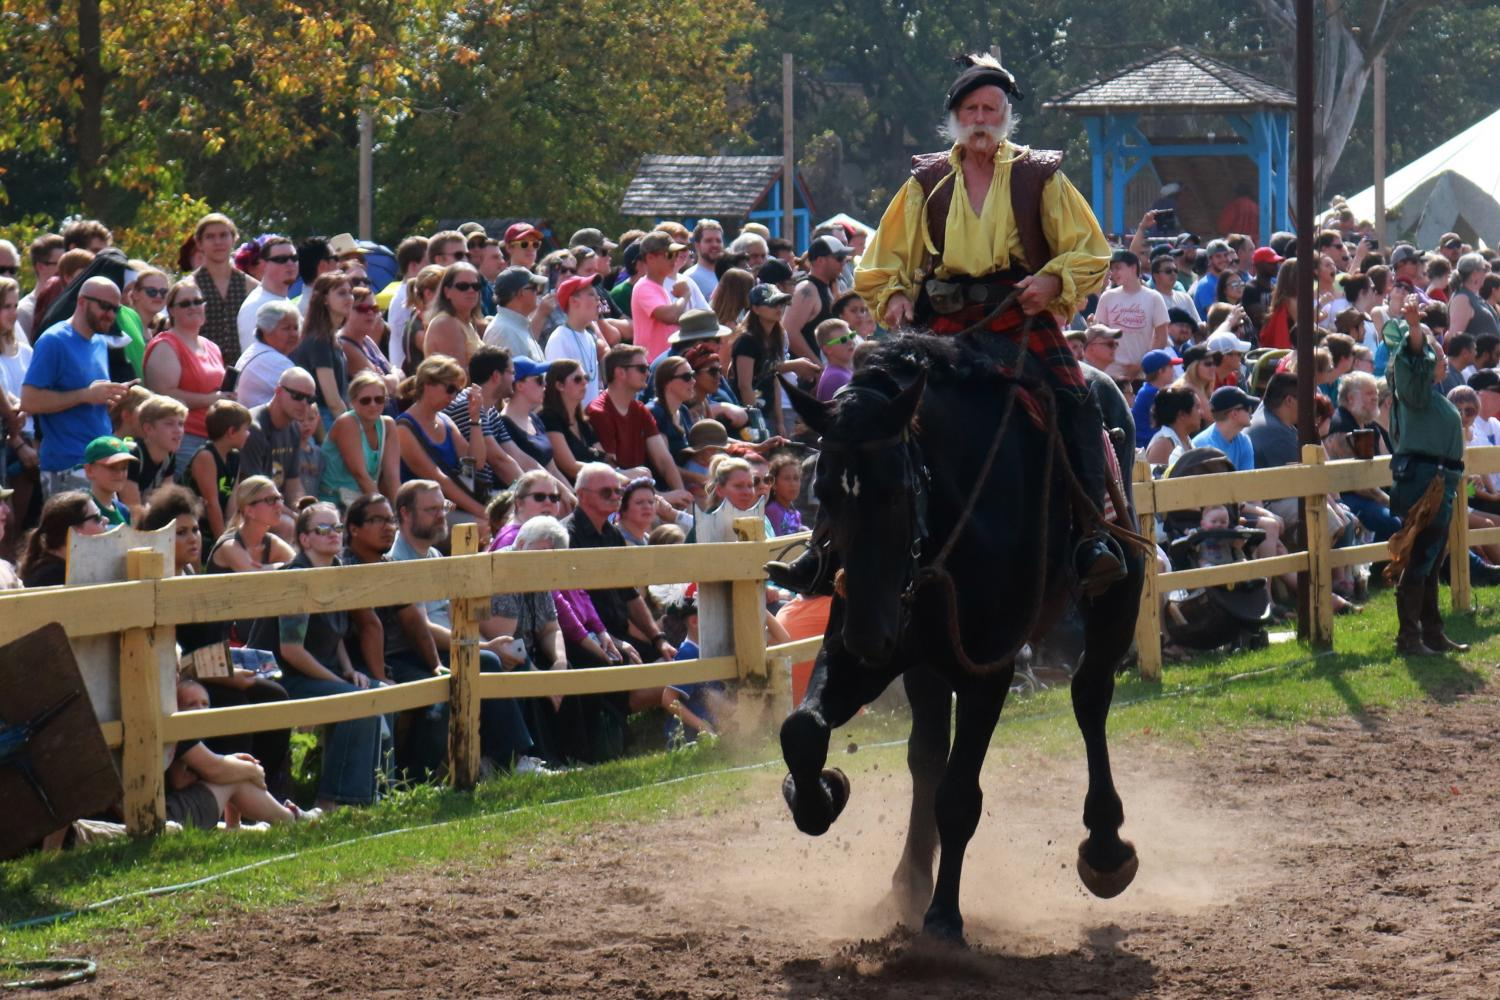 A knight marshal gallops across the jousting arena at the Renaissance Festival.